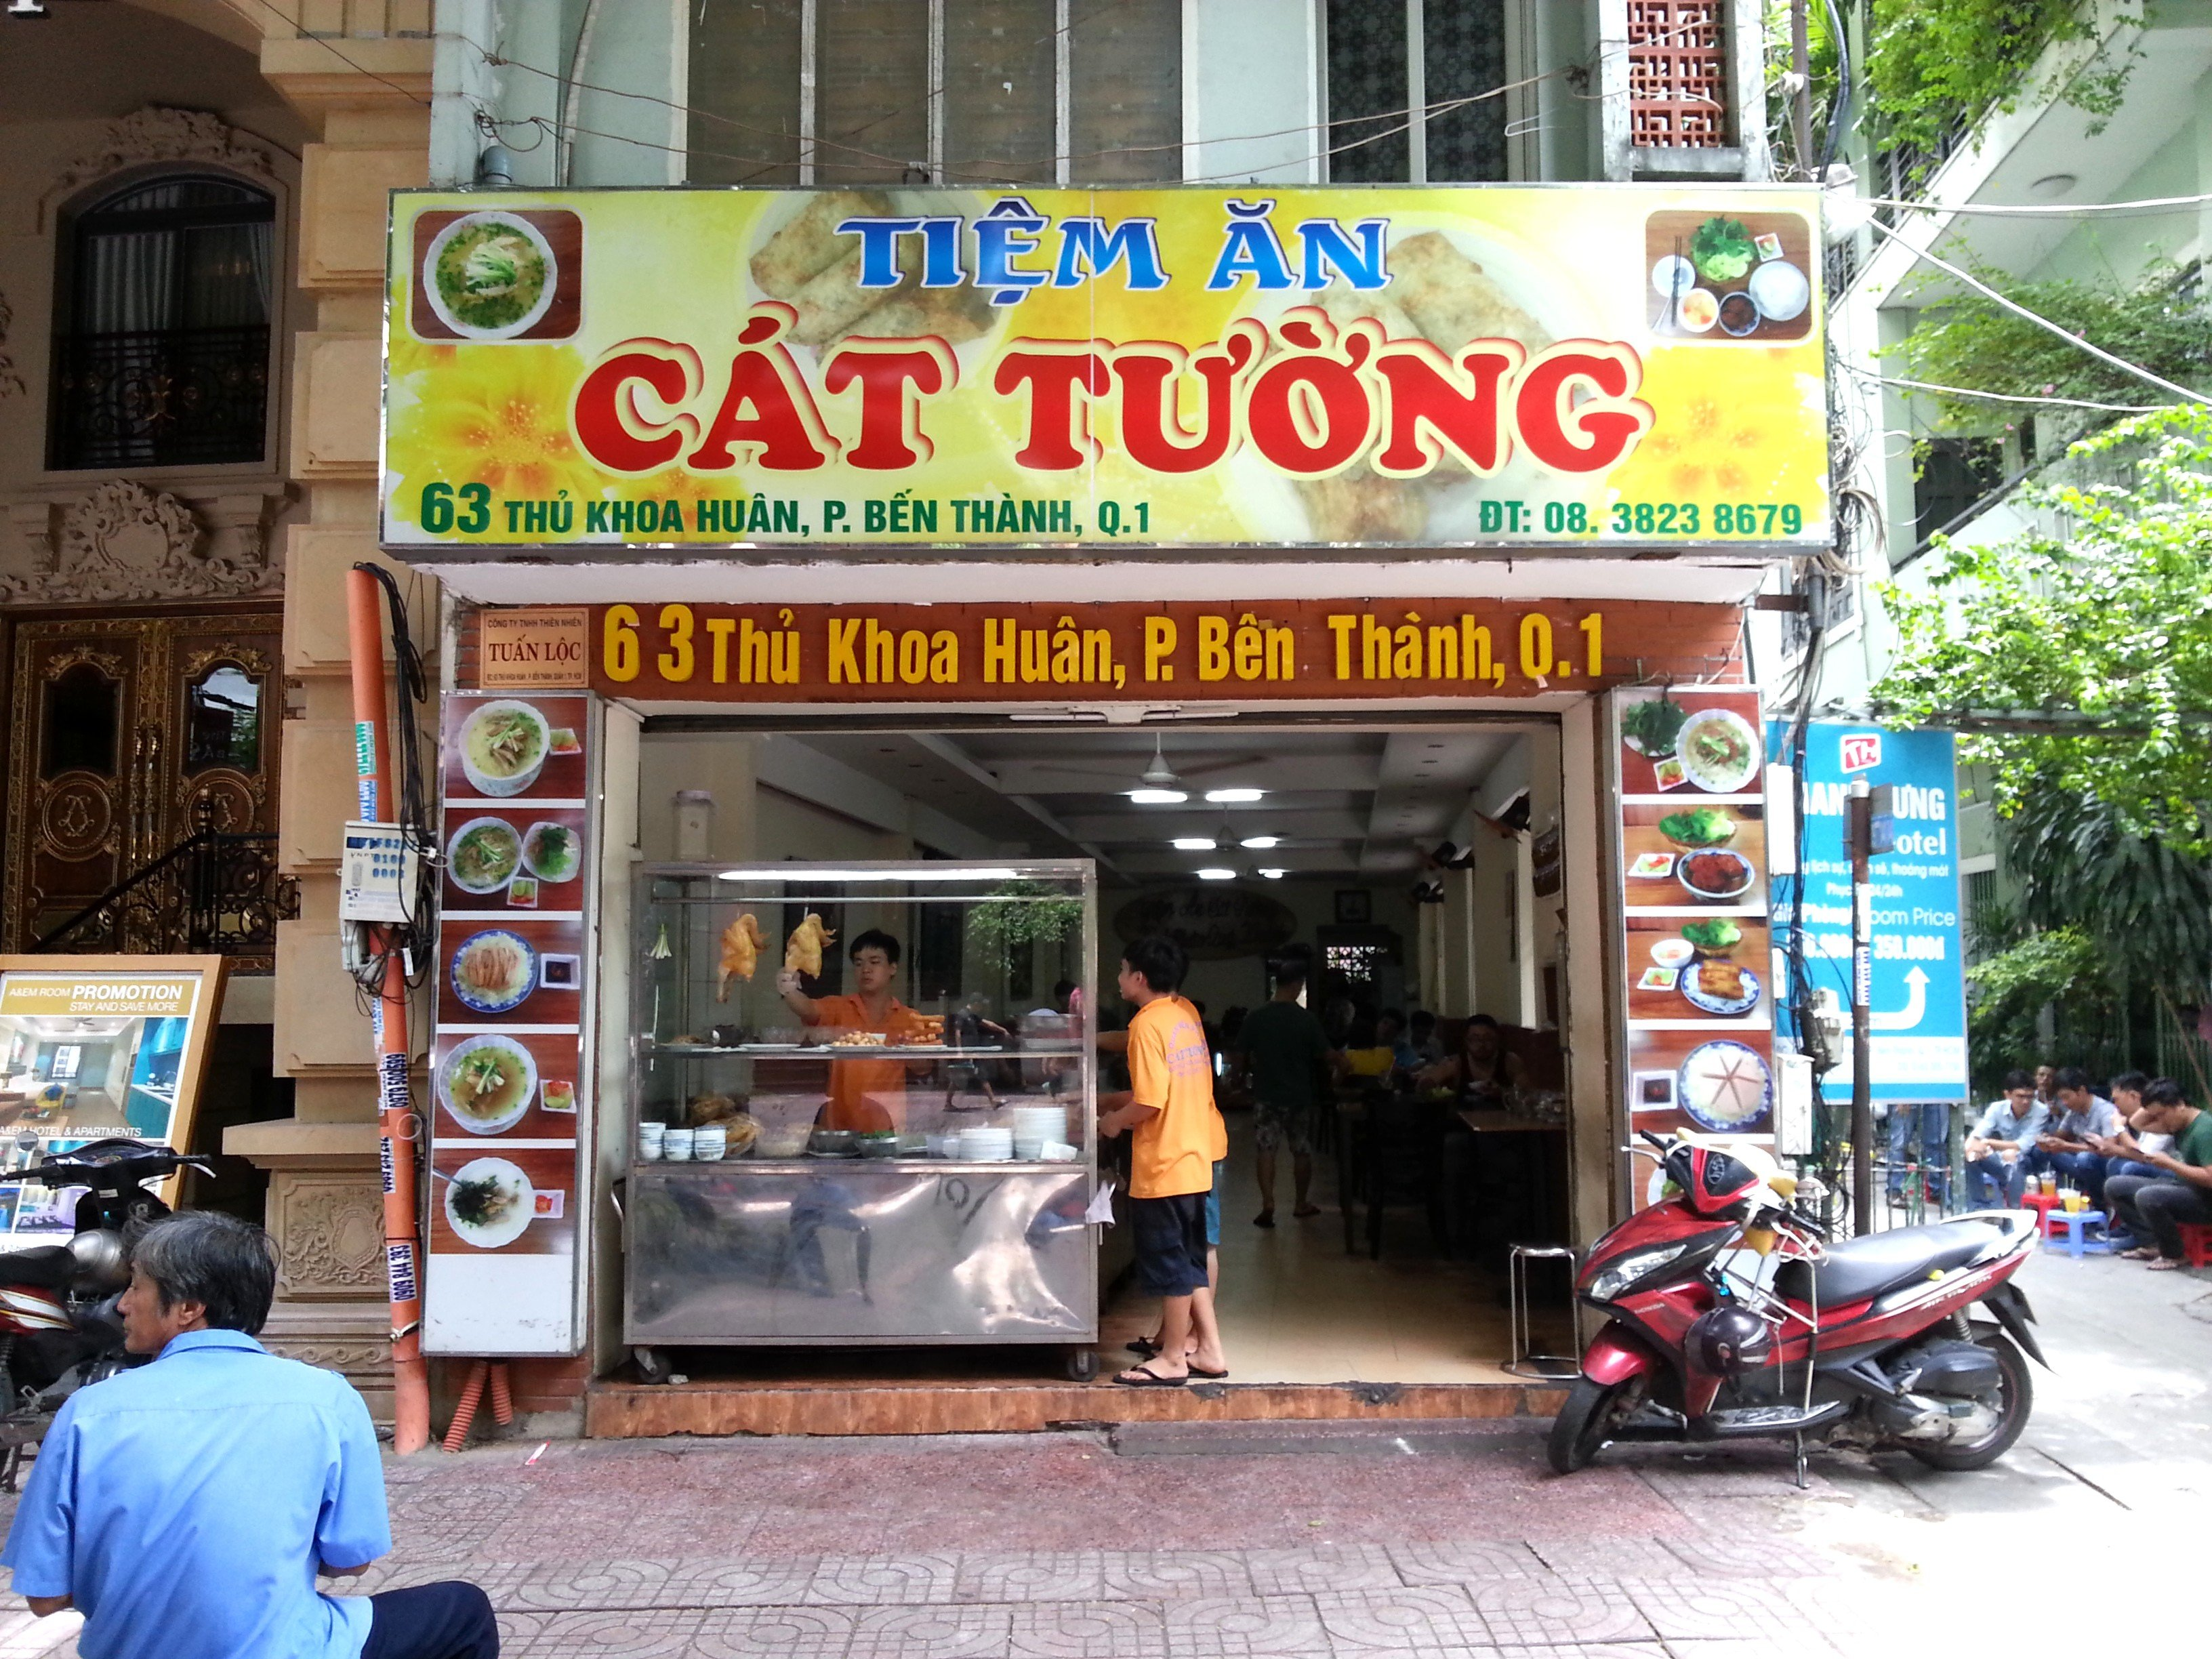 Tiem An Cat Tuong Restaurant in Ho Chi Minh City